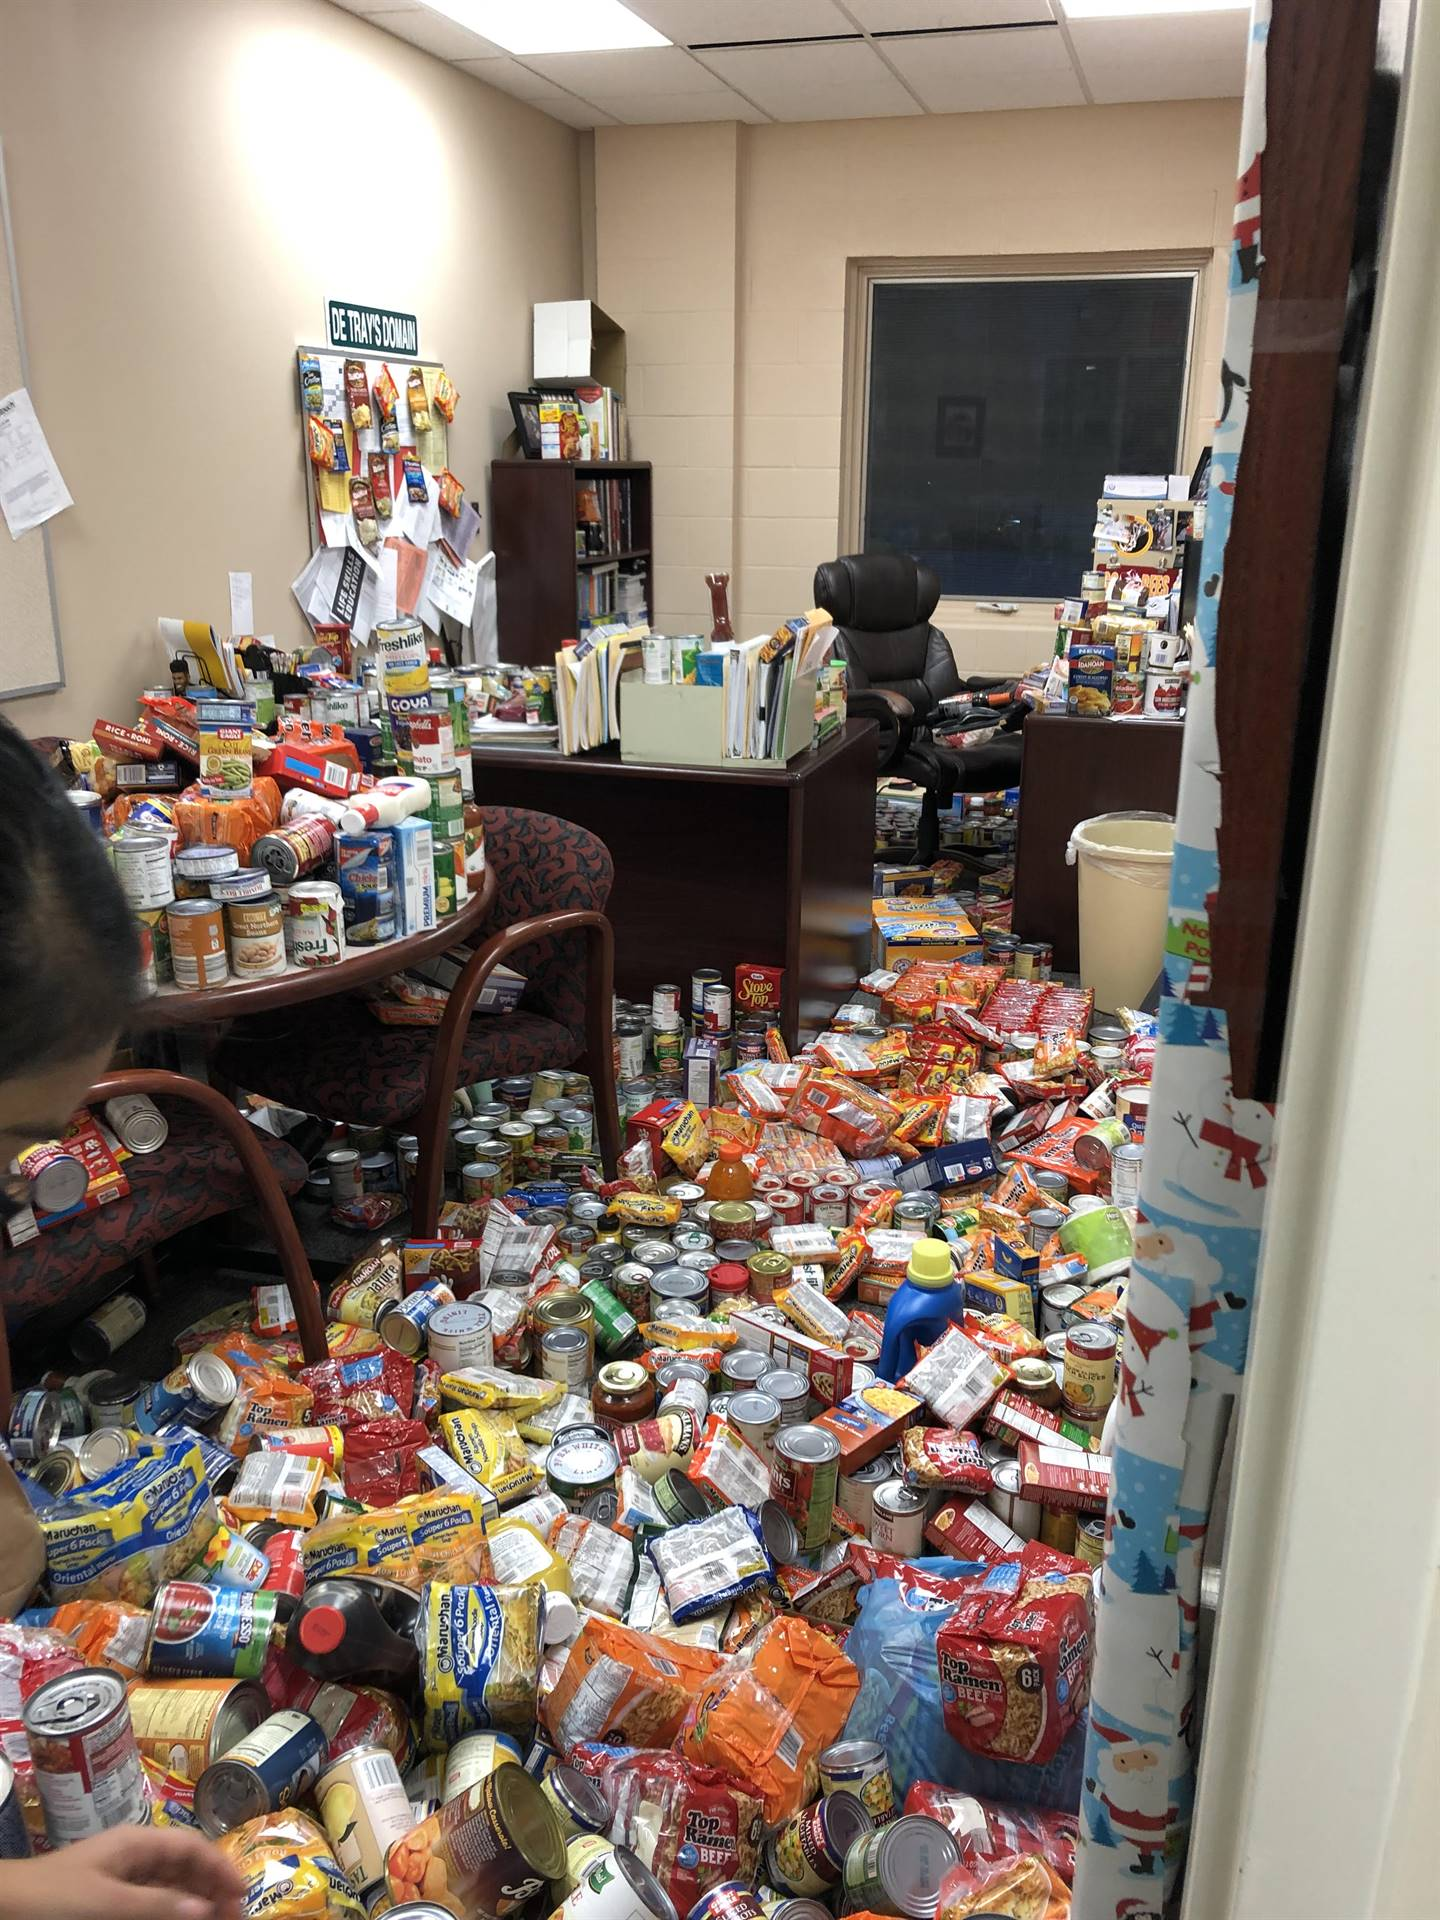 Mr. Detrays office with canned goods